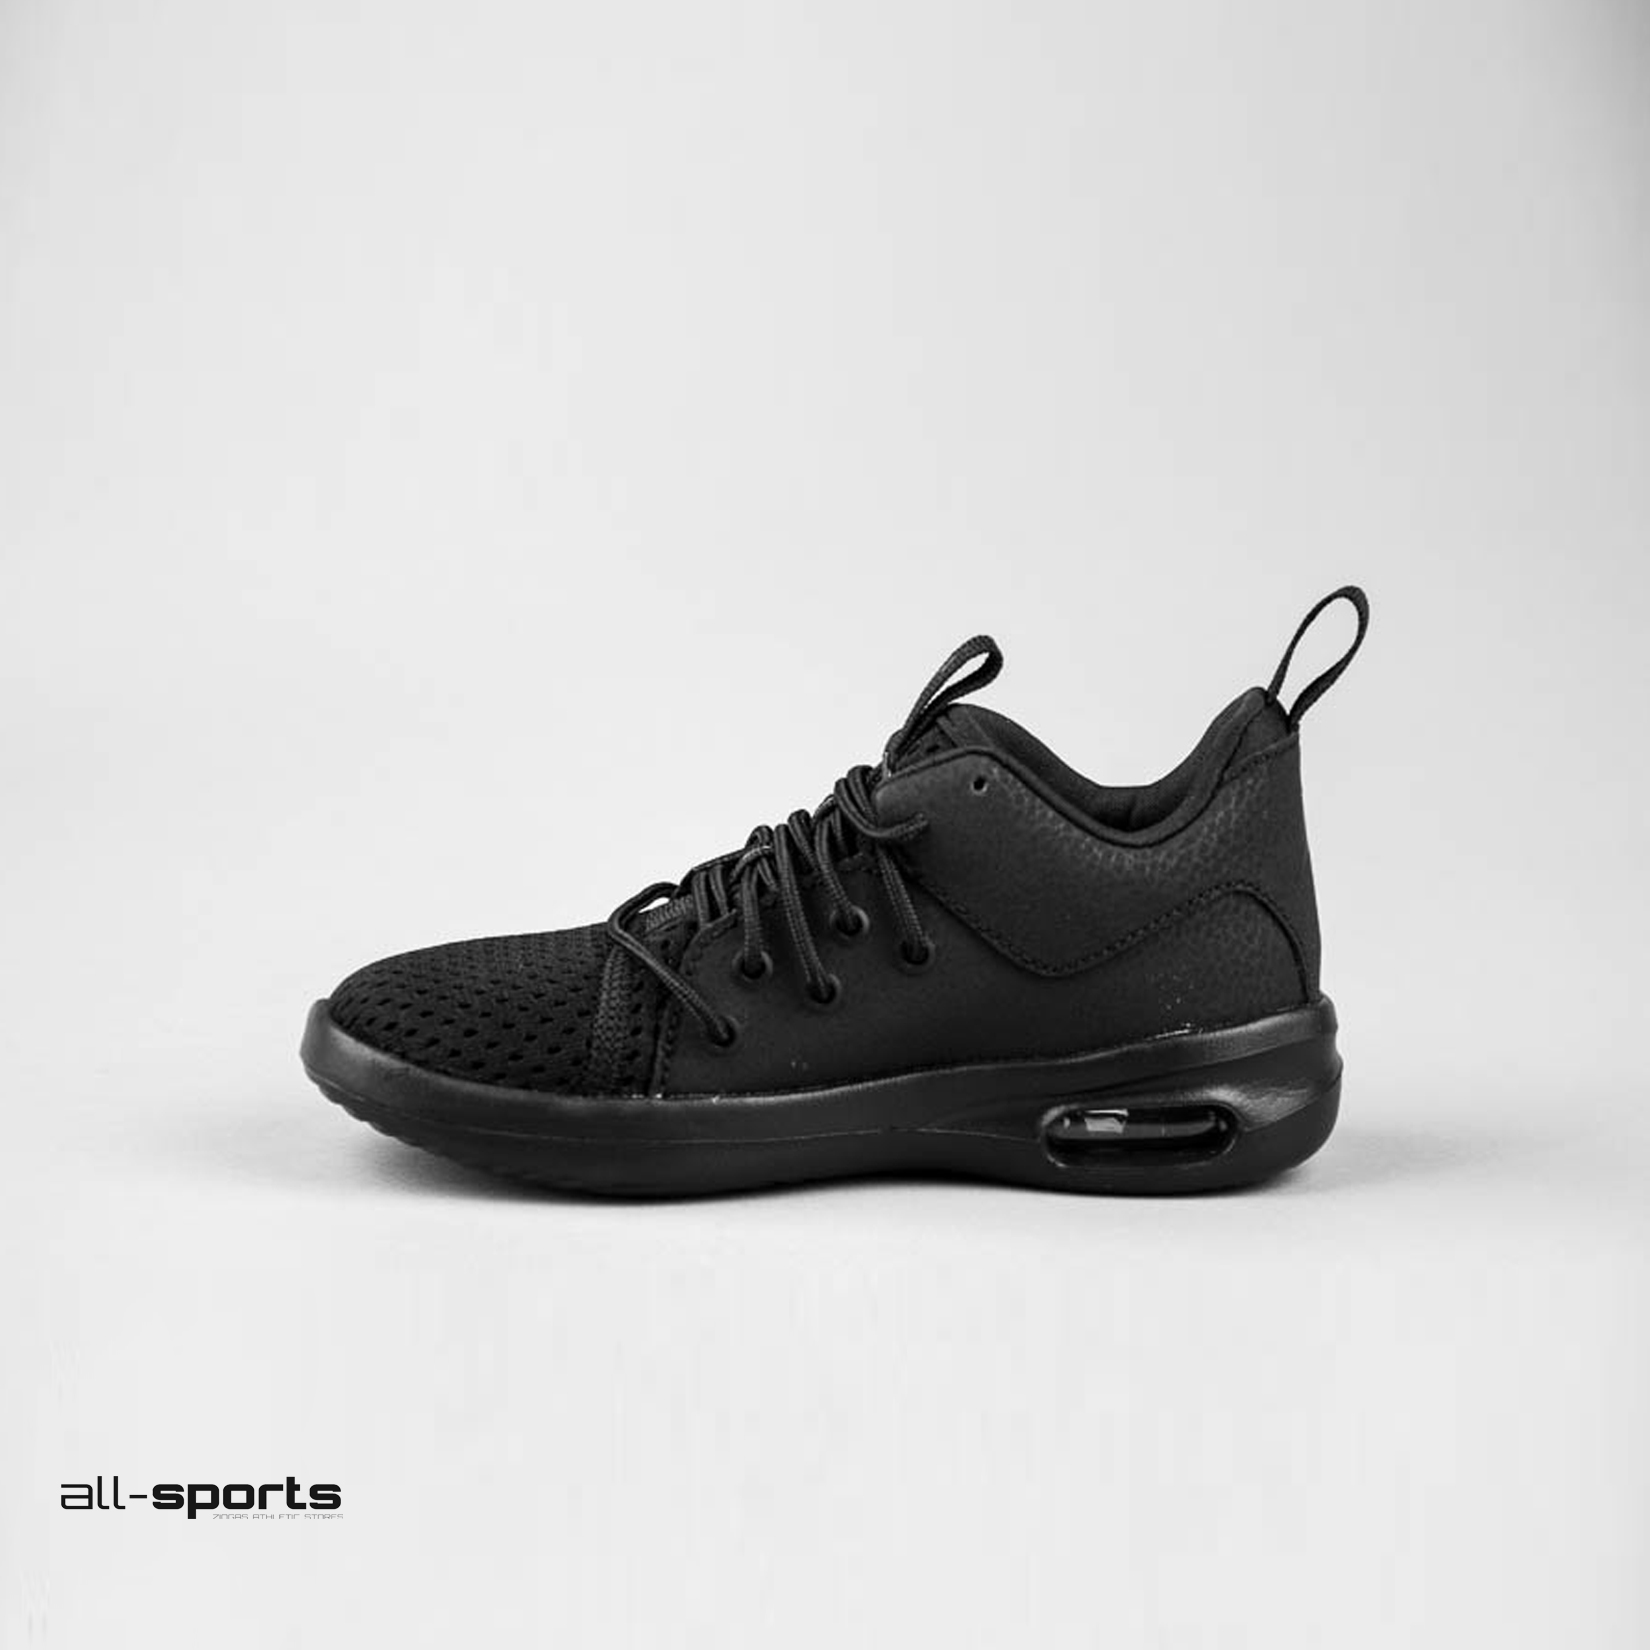 online retailer d9274 b4a09 Kid's Shoes Jordan Air First Class PS Black | All-Sports.gr